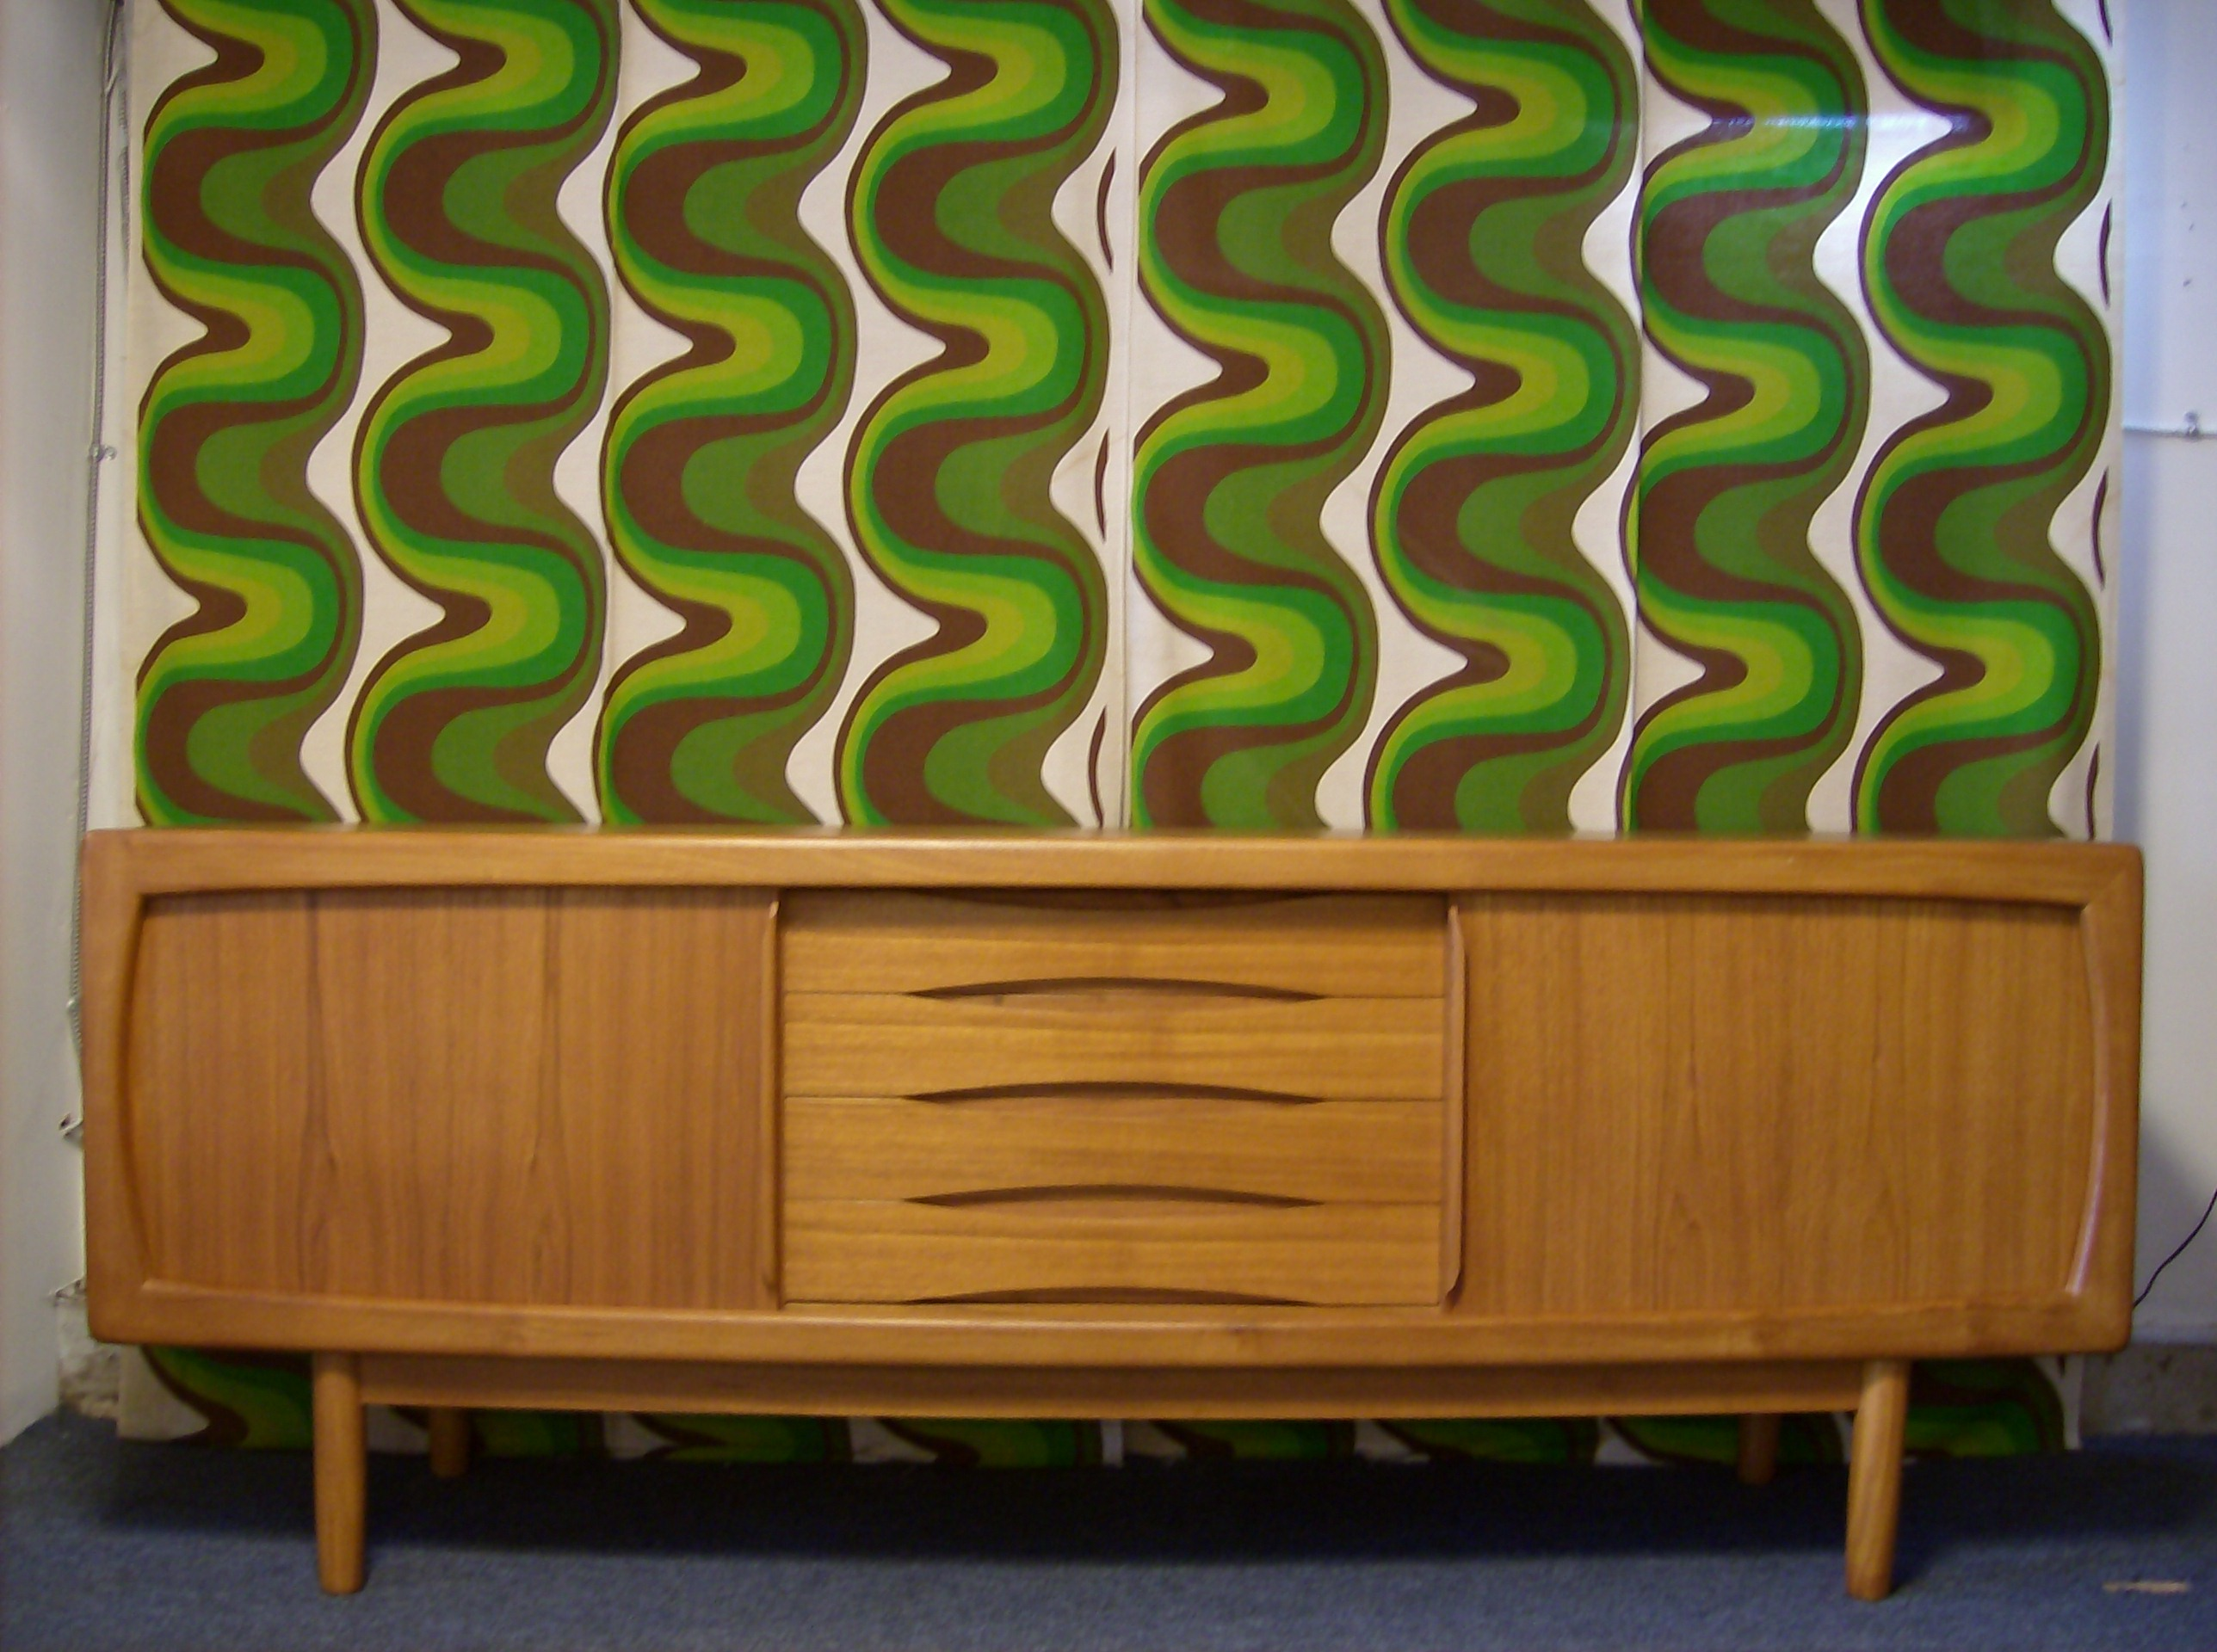 004. The Fabulous Find   Mid Century Modern Furniture Showroom in